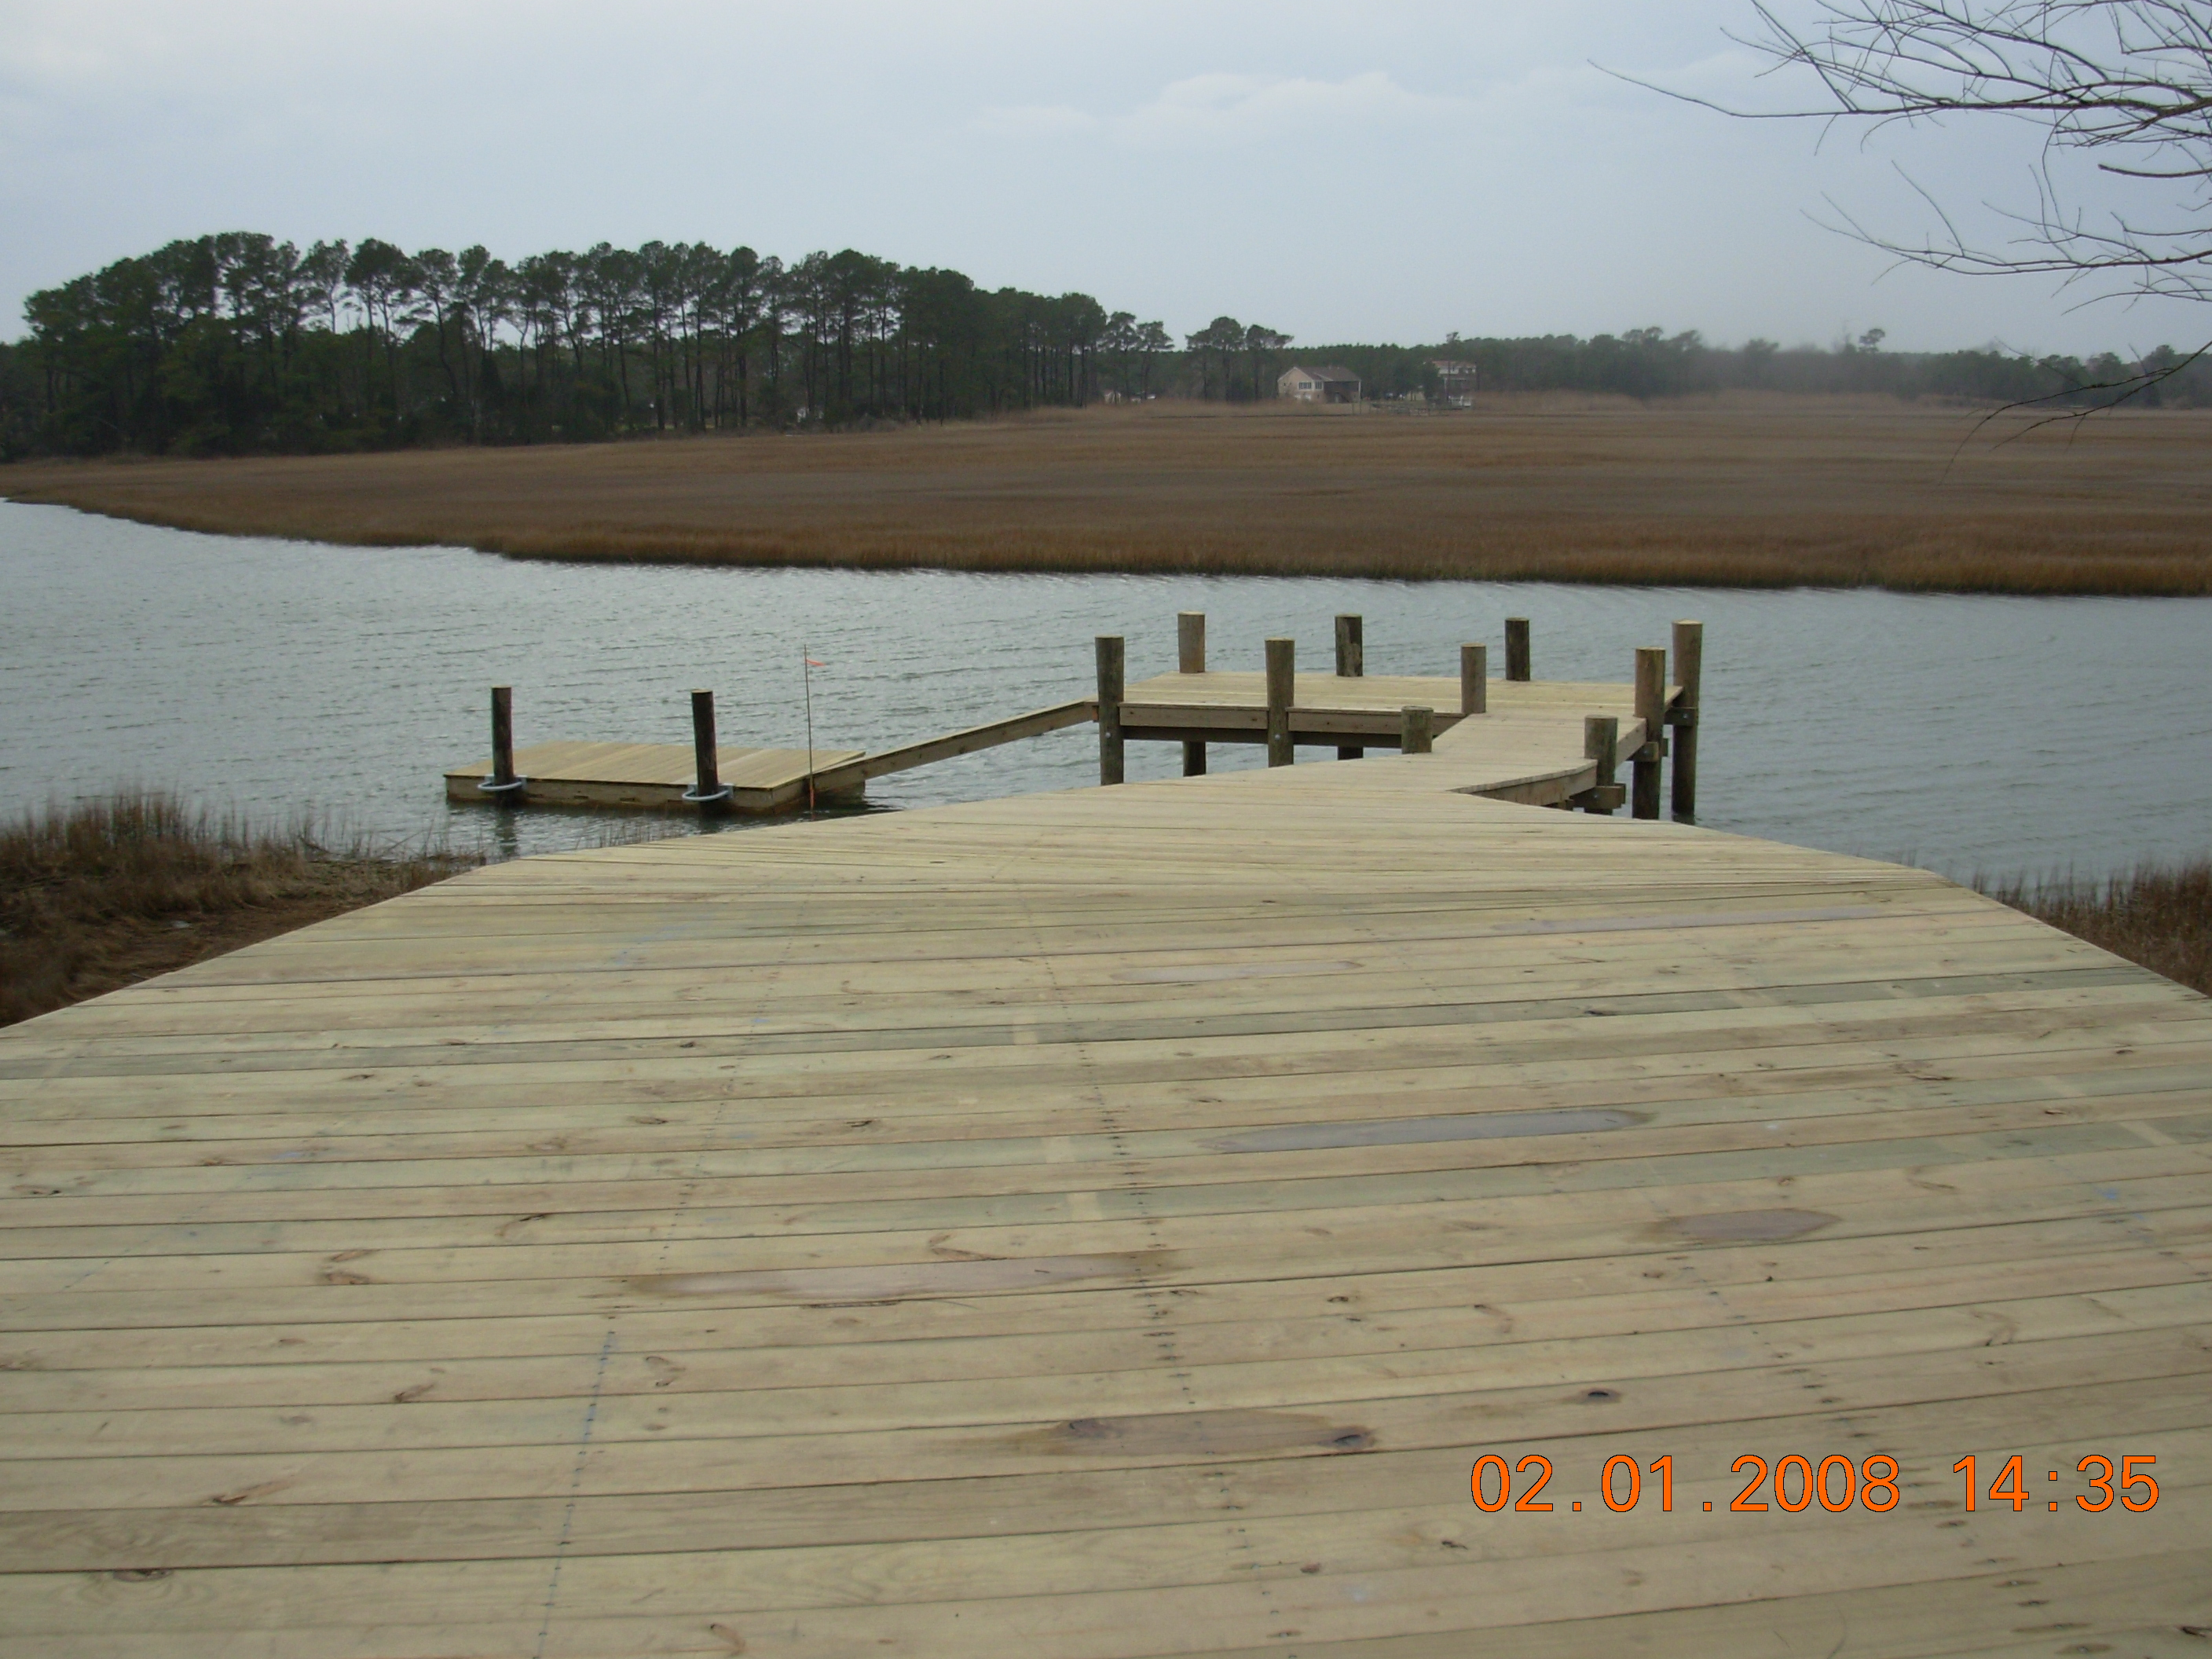 Quality and Dependable Service | Eastern Pile Driving, LLC on mobile shipyard, mobile hot tub, mobile swimming pool, mobile restrooms, mobile river, mobile bridge, mobile storage shed, mobile floating deck, mobile island,